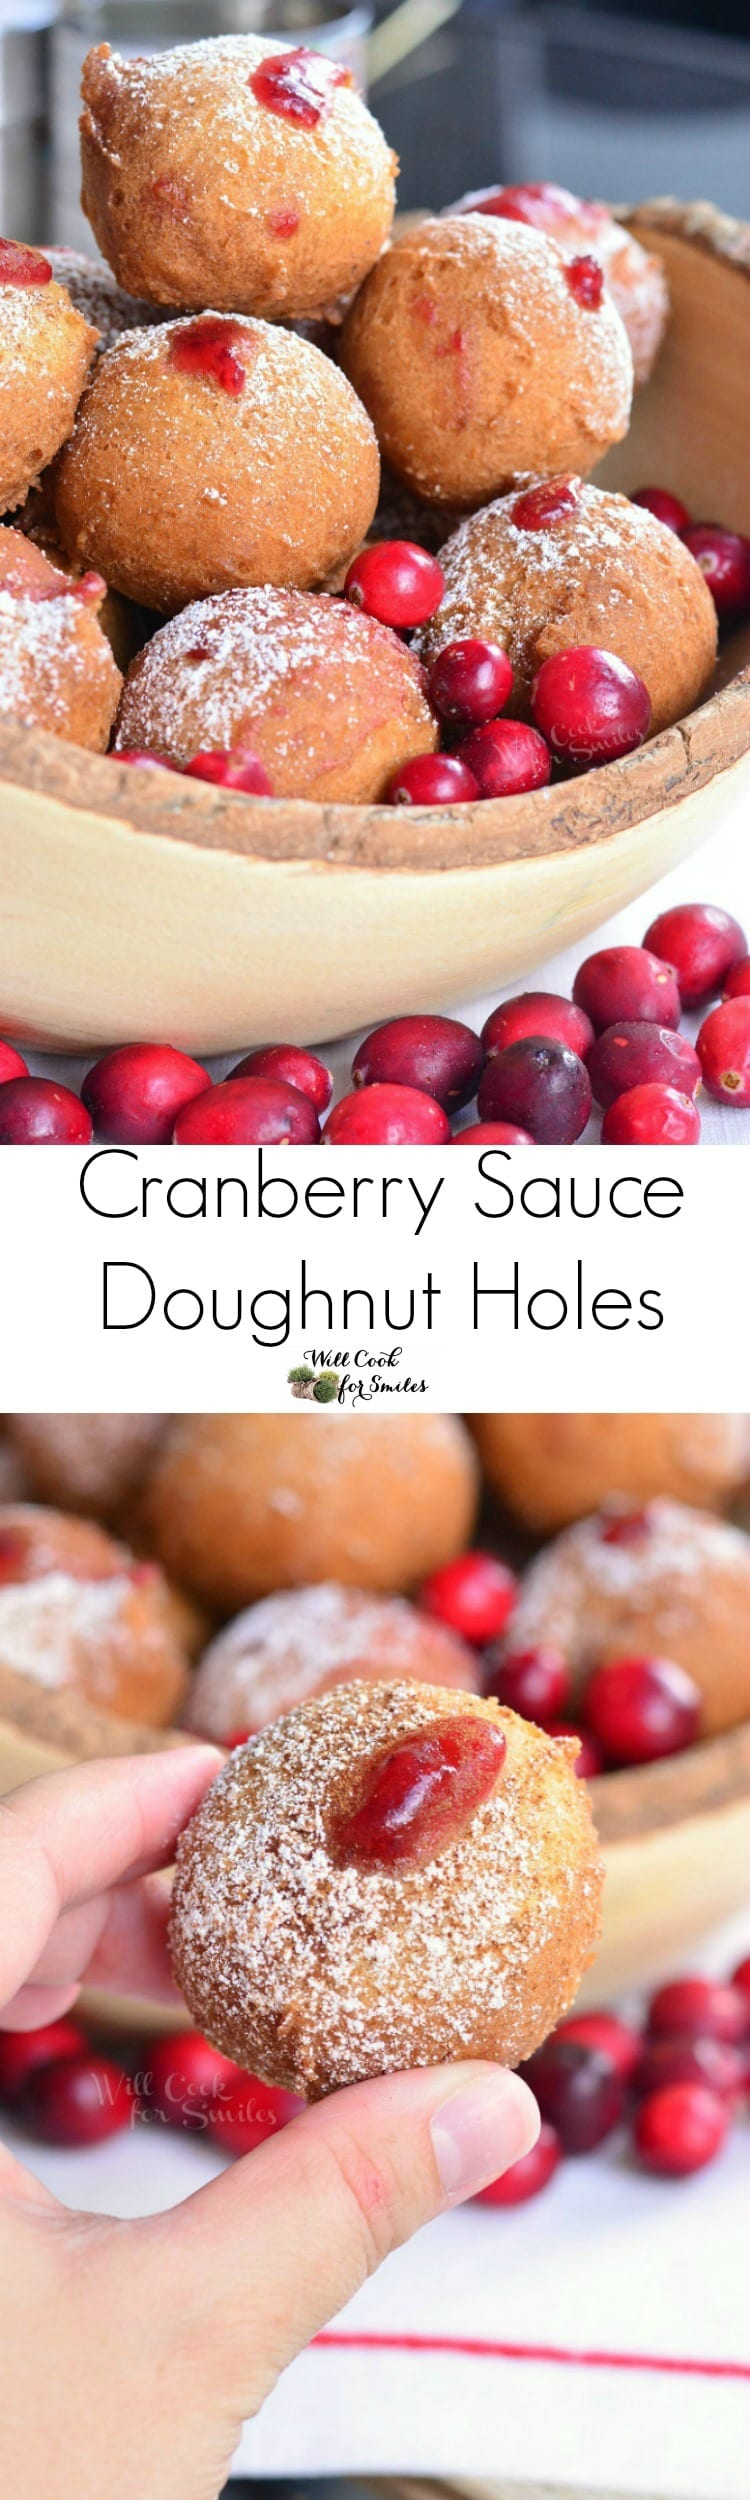 Cranberry Sauce Doughnut Holes. These little cranberry sauce filled doughnut holes make a delicious and easy breakfast treat.